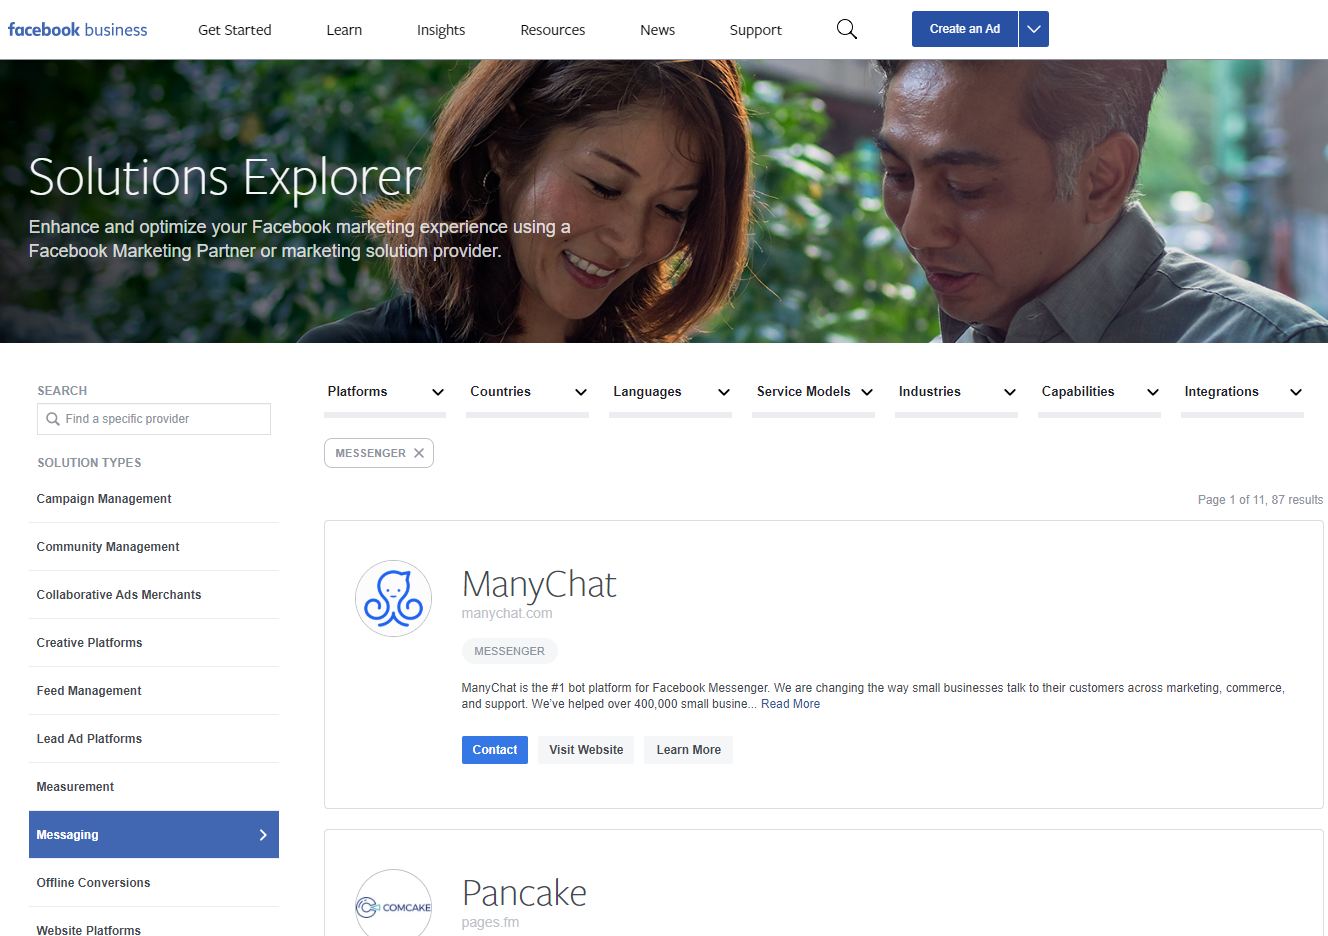 manychat partner facebook